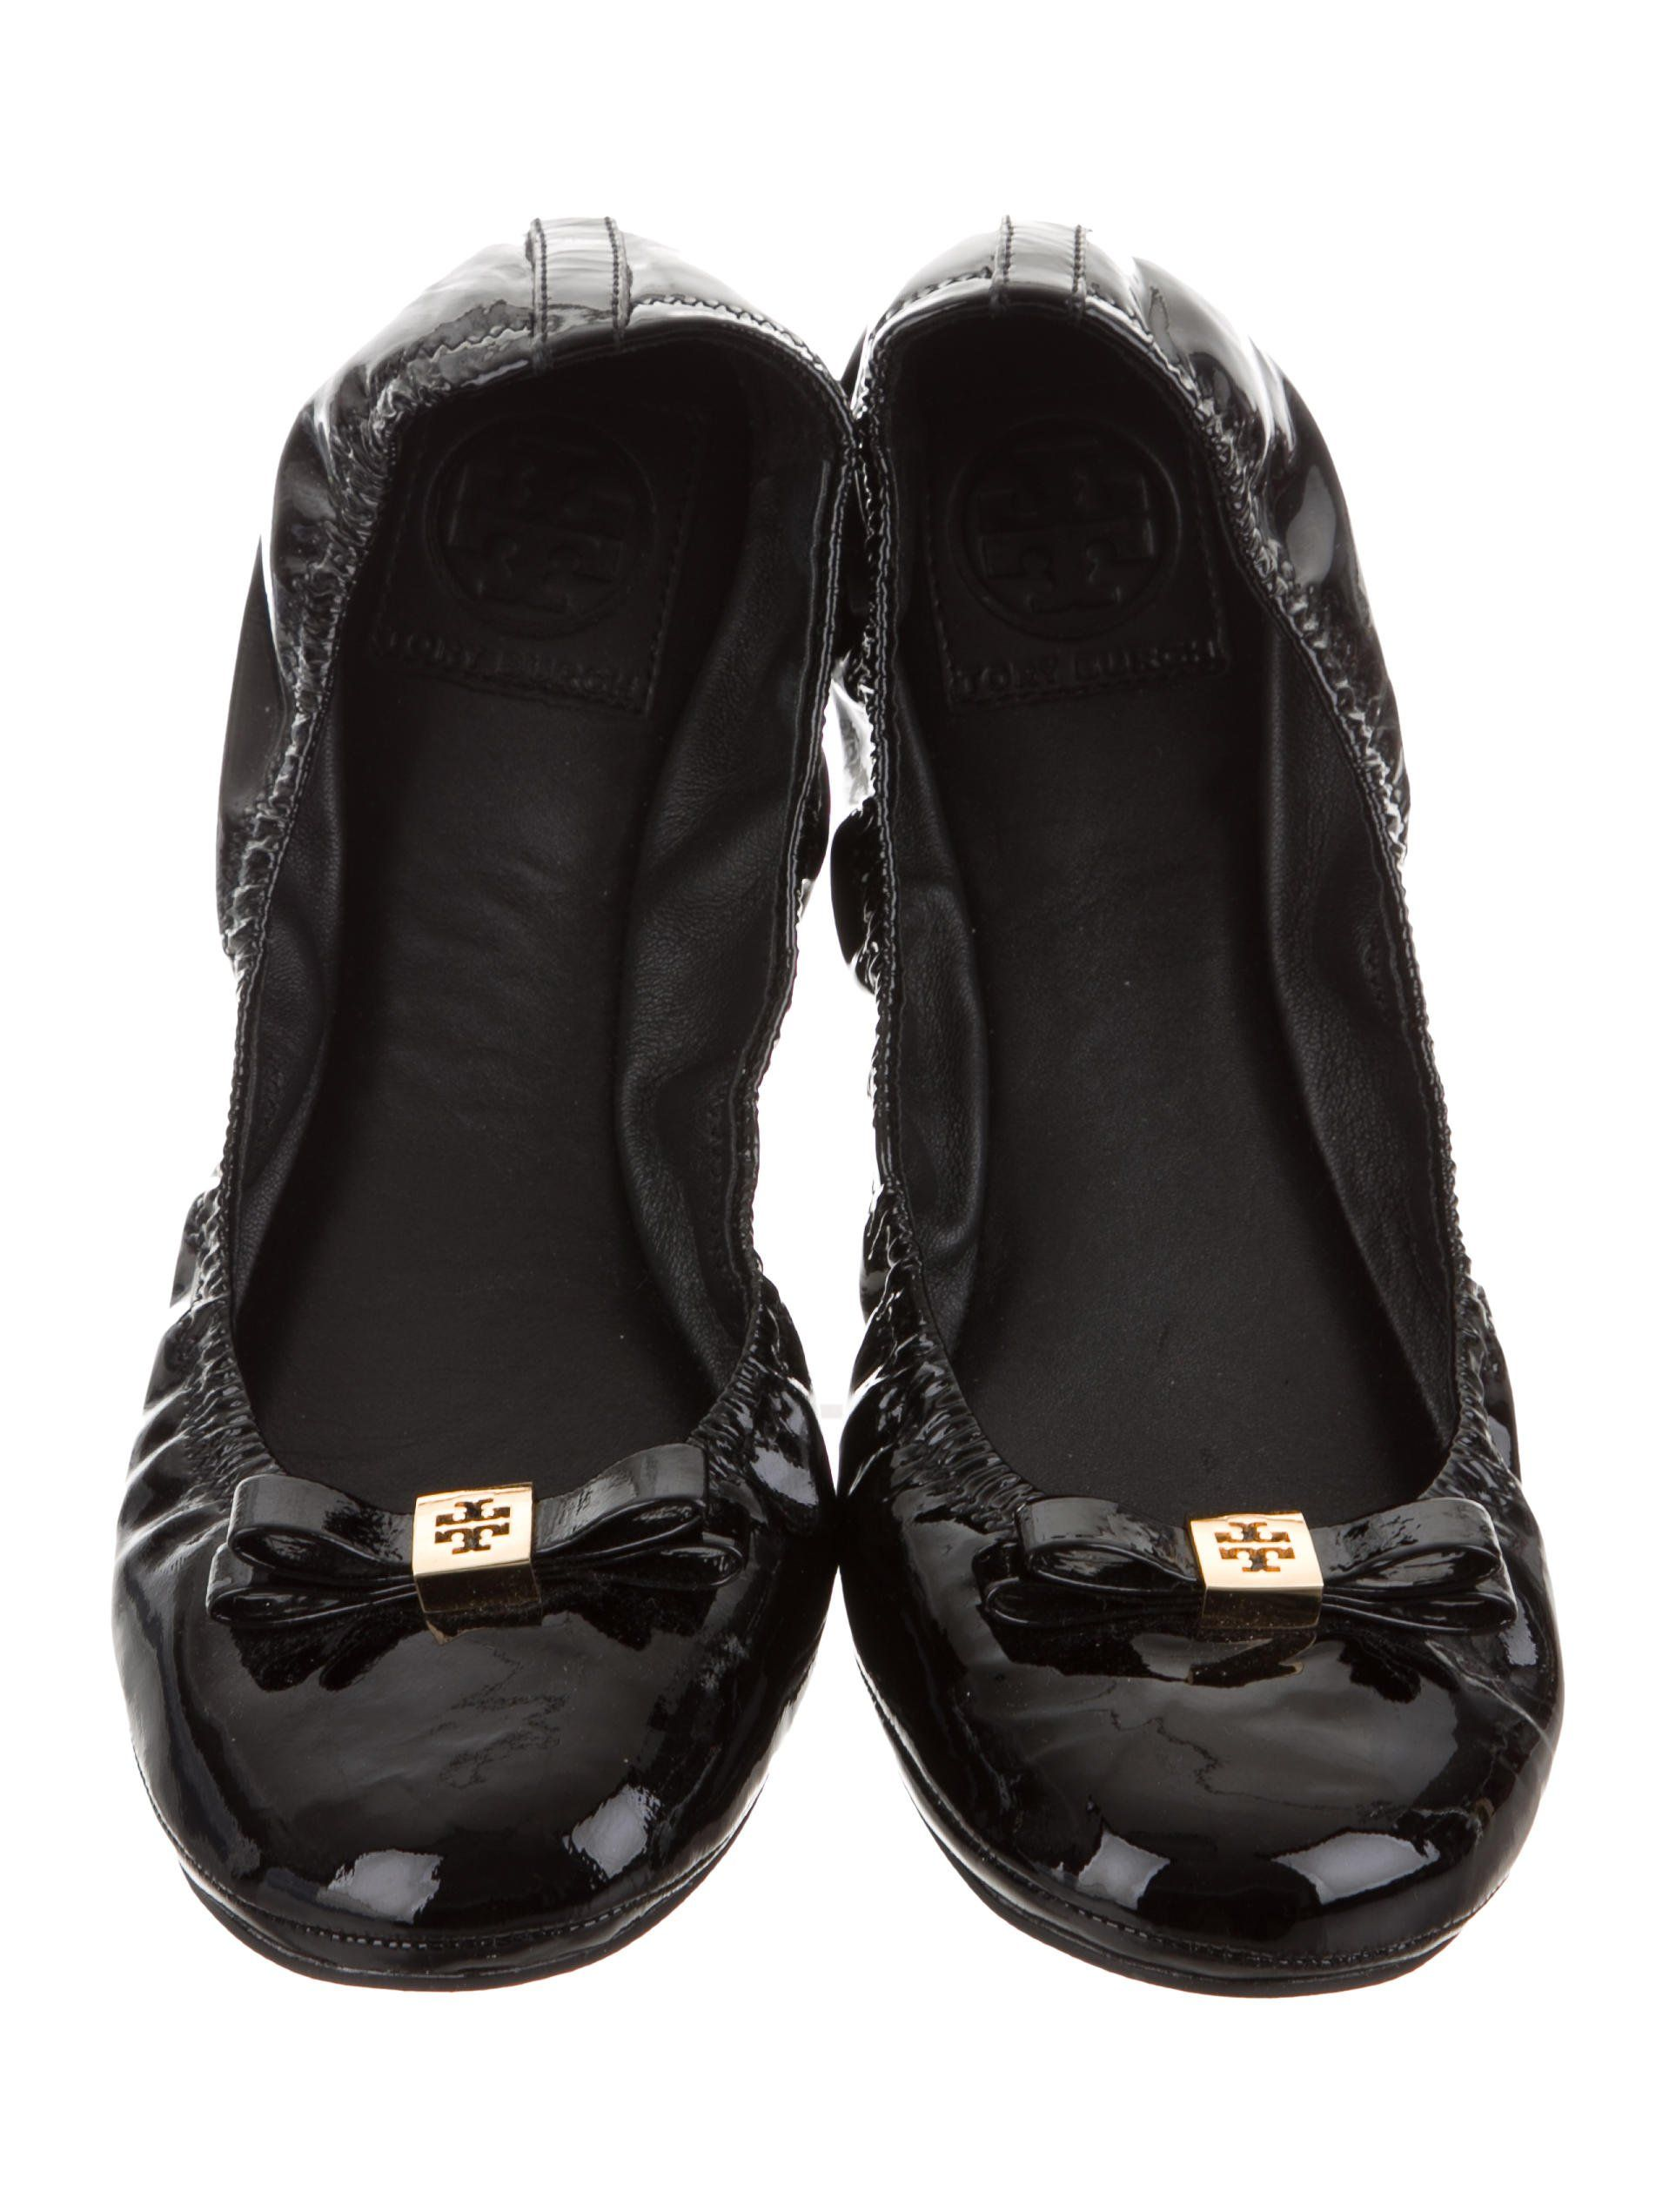 546f7ab7e Black patent leather Tory Burch ballet flats with bow accent at vamps,  gold-tone logo hardware, elasticized toplines and rubber soles.